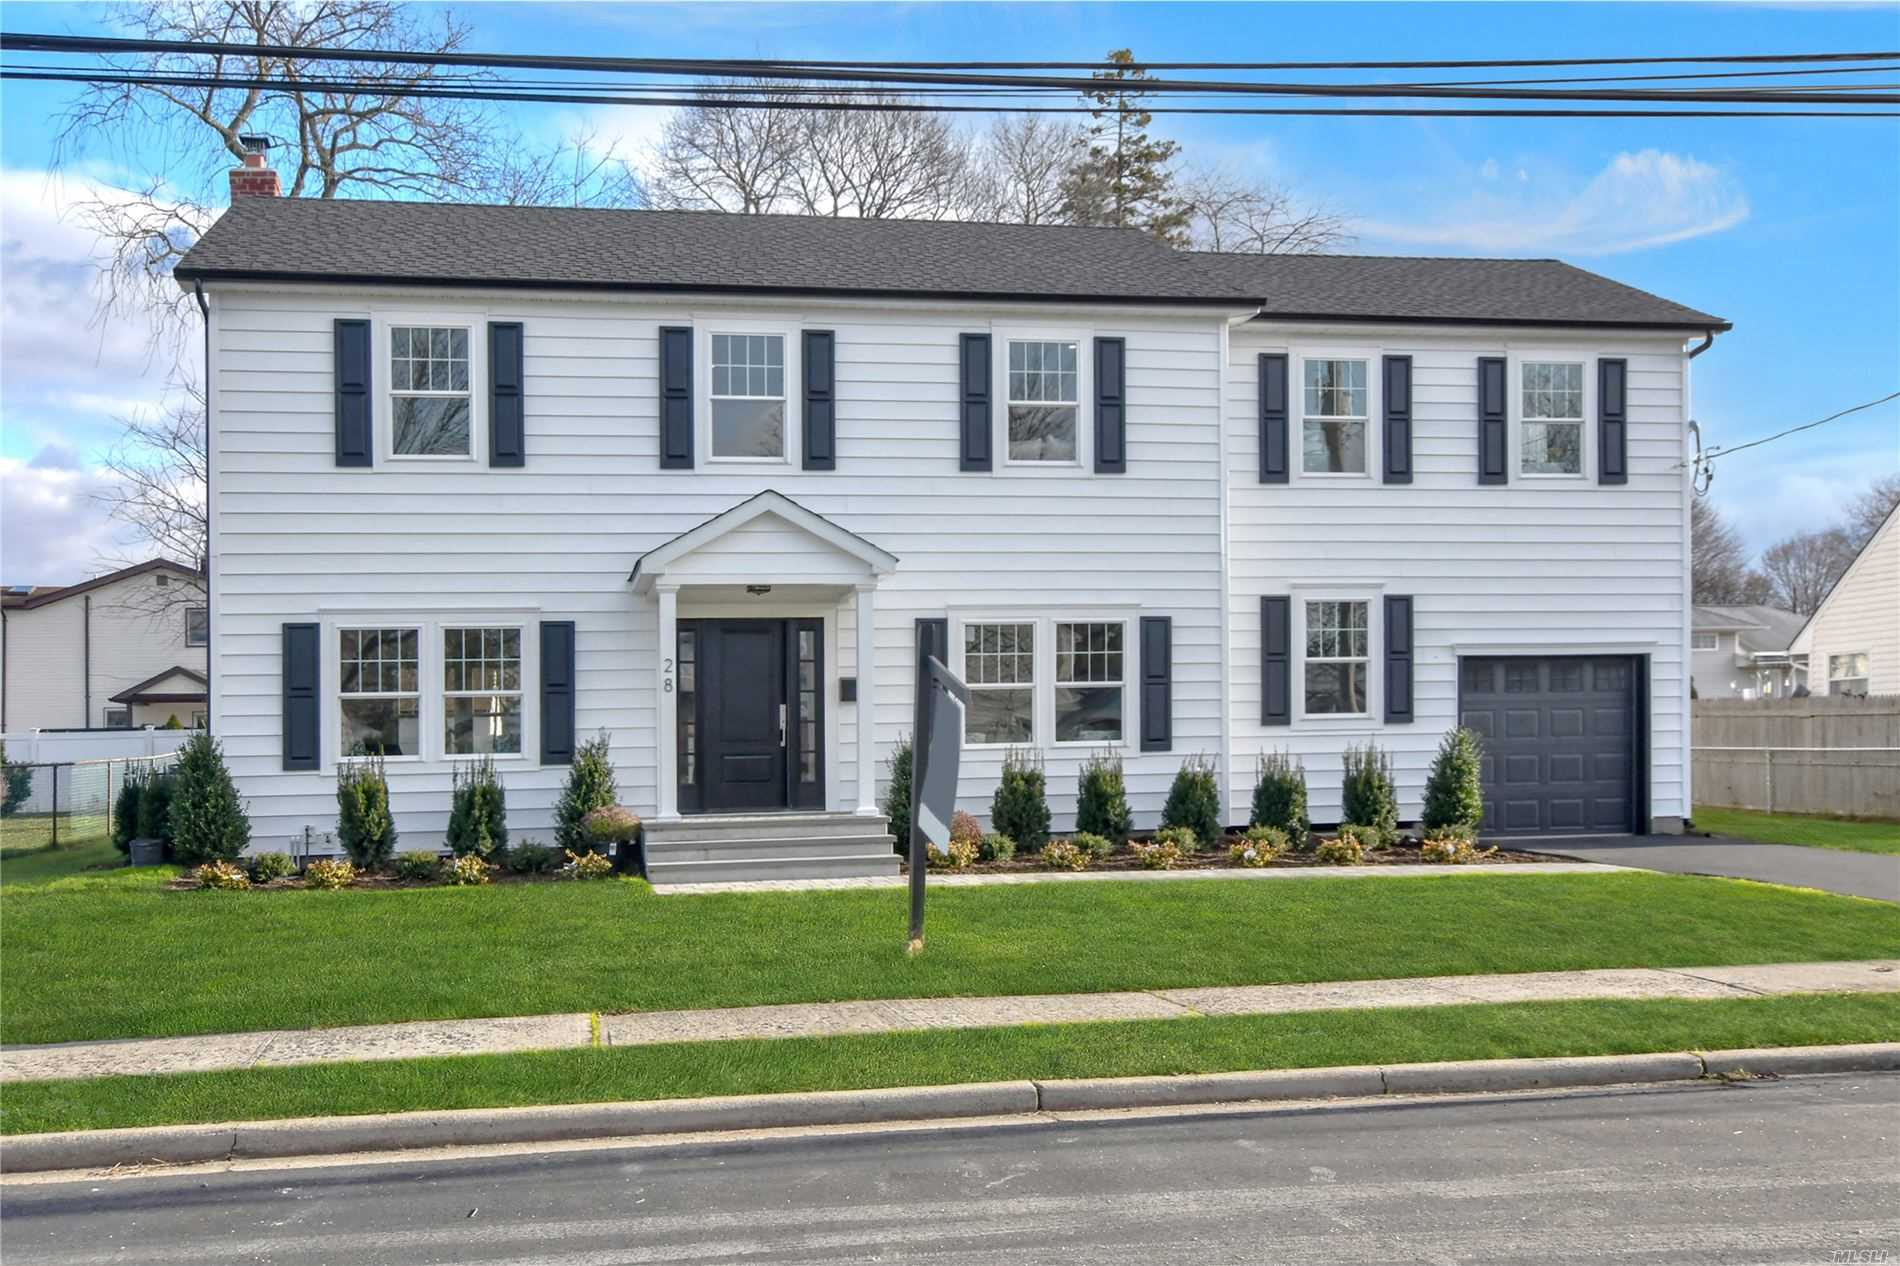 Stunning top-quality rebuild 3000 plus sq.ft. Colonial w 2-story entry, open layout, 9'ceilings, hardwood floors, gourmet kitchen w quartz counters, access to new stone patio, spacious yard, master bedroom and bath w radiant heat floor & large walk-in closet, 3 additional bedrooms, laundry 2nd floor, conveniently located near houses of worship and more. Completion in May.  Move right in for Summer '19!!